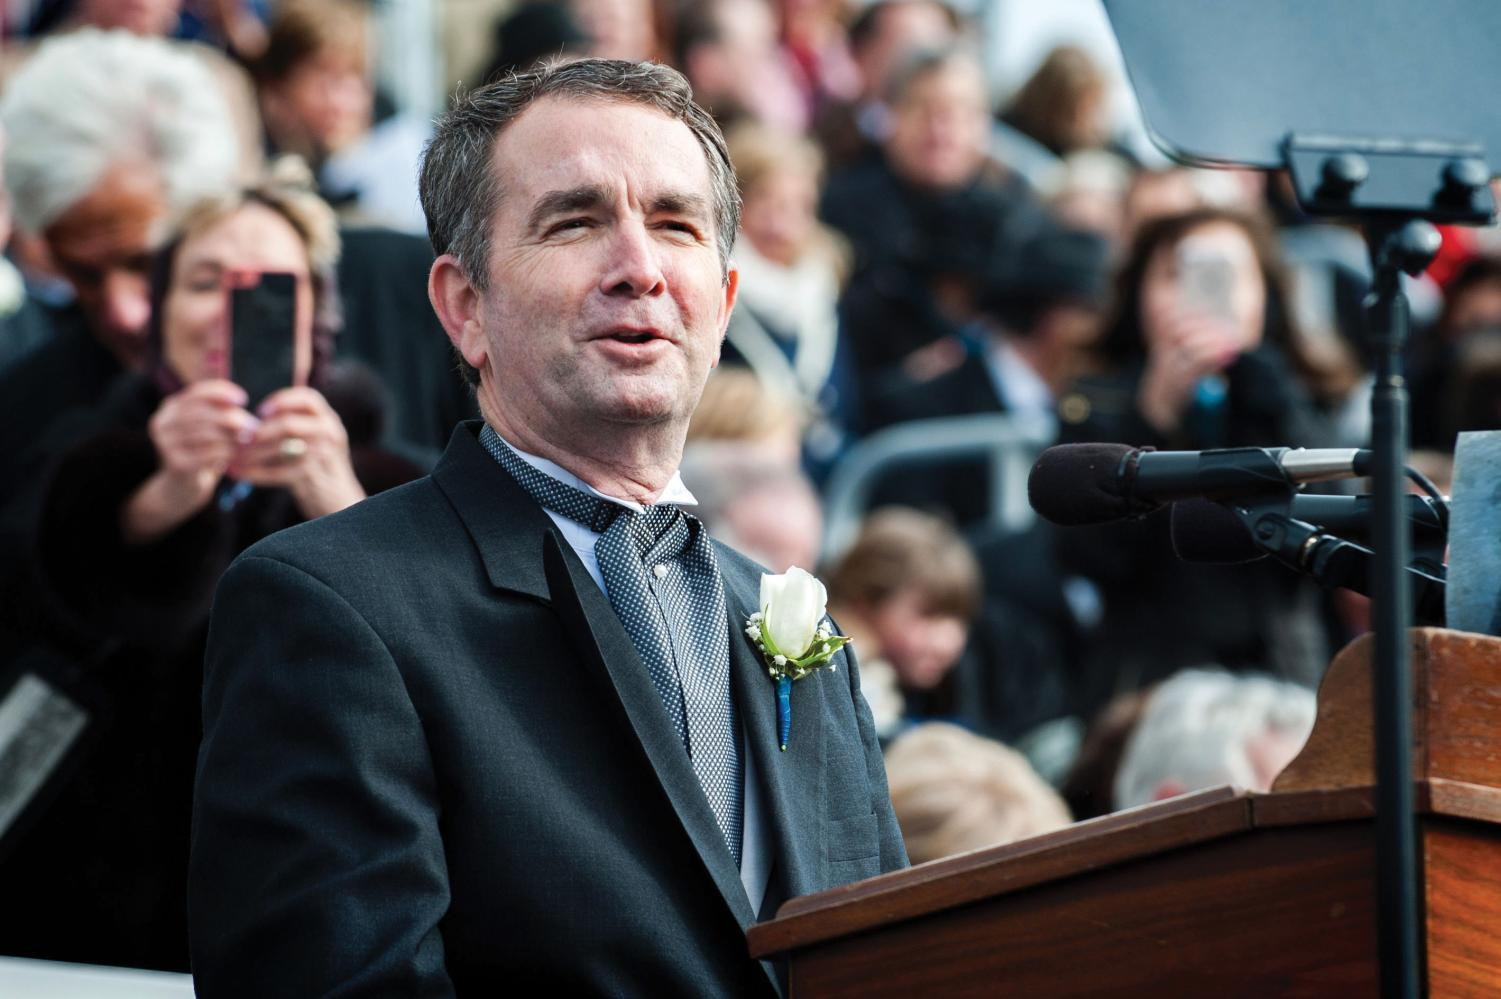 Governor Ralph Northam faces allegations of racism.